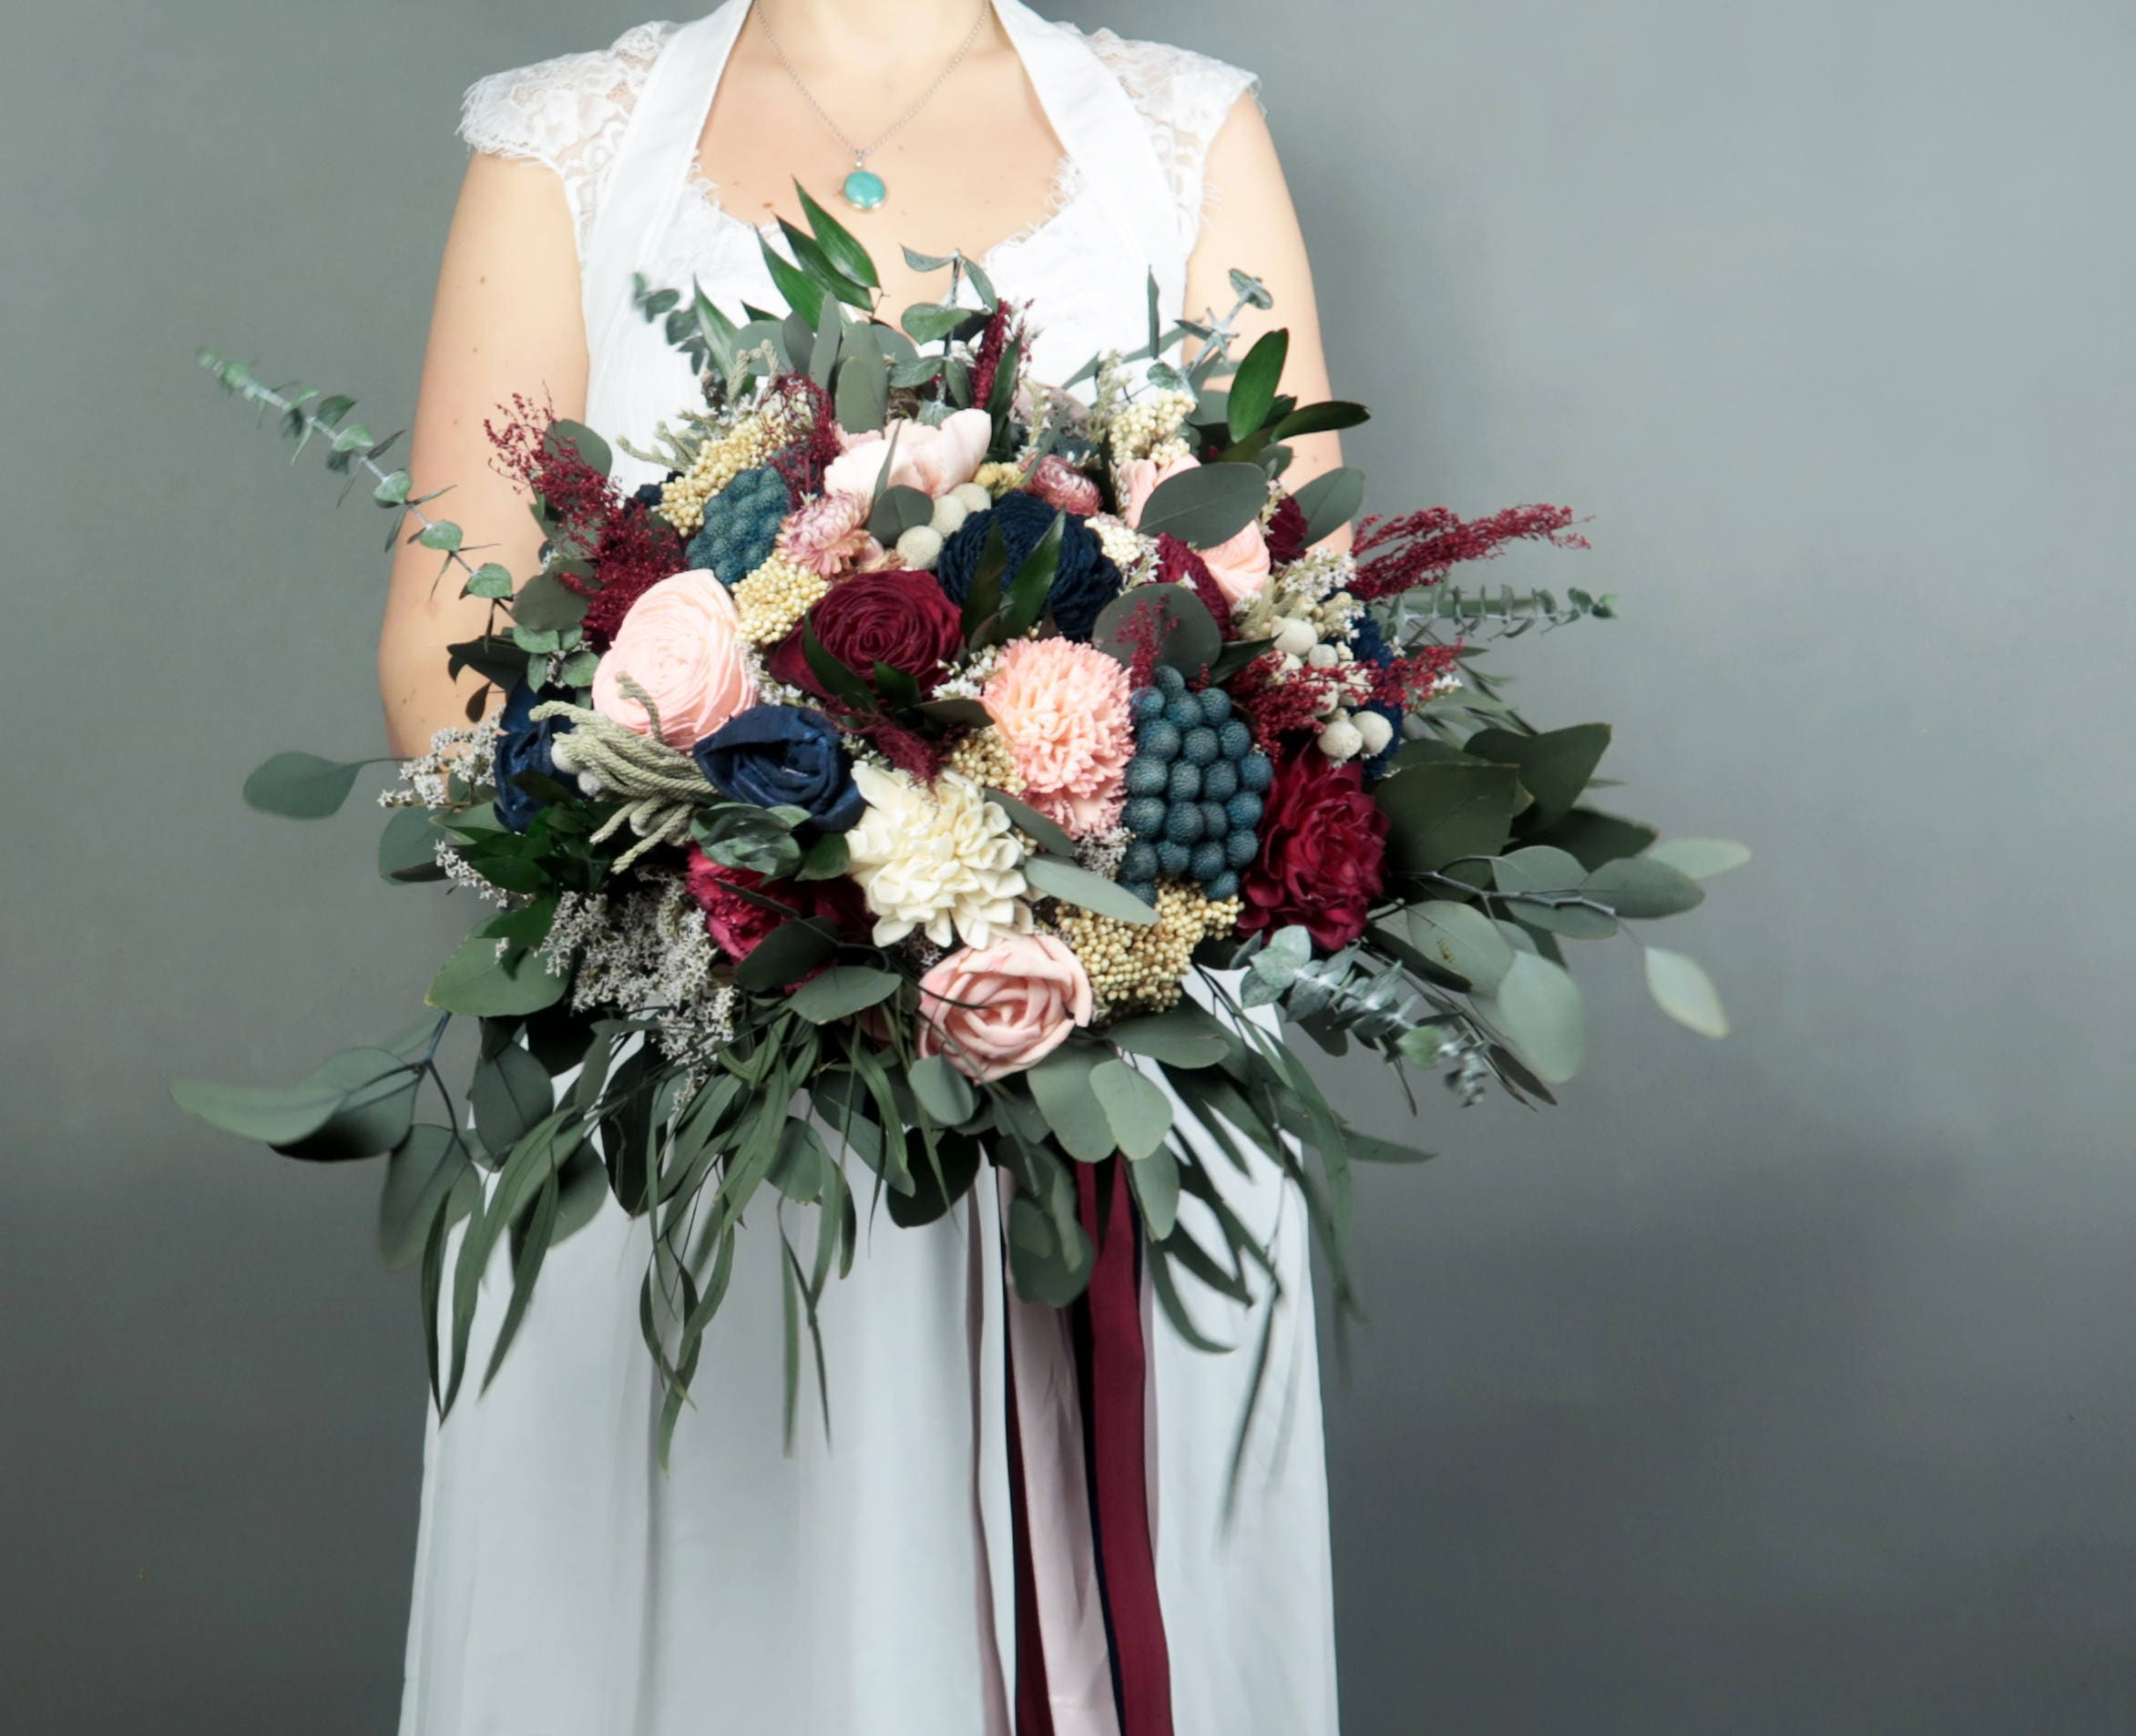 Boho Wedding Bouquet In Shades Of Wine Blush Pink And Navy With